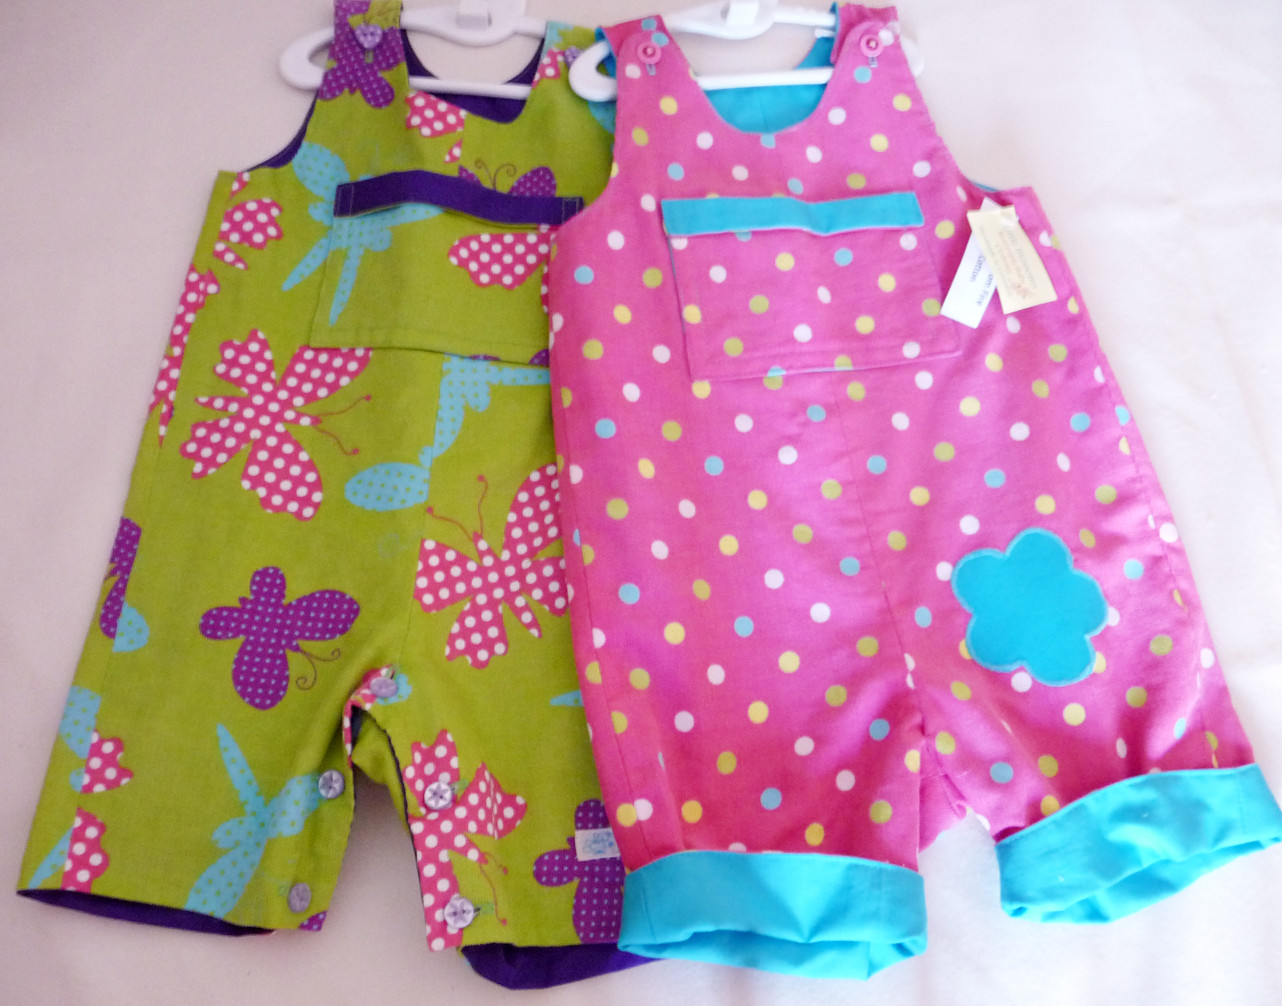 Baby Clothes Patterns Luxury Baby Dresses Of Wonderful 46 Pictures Baby Clothes Patterns